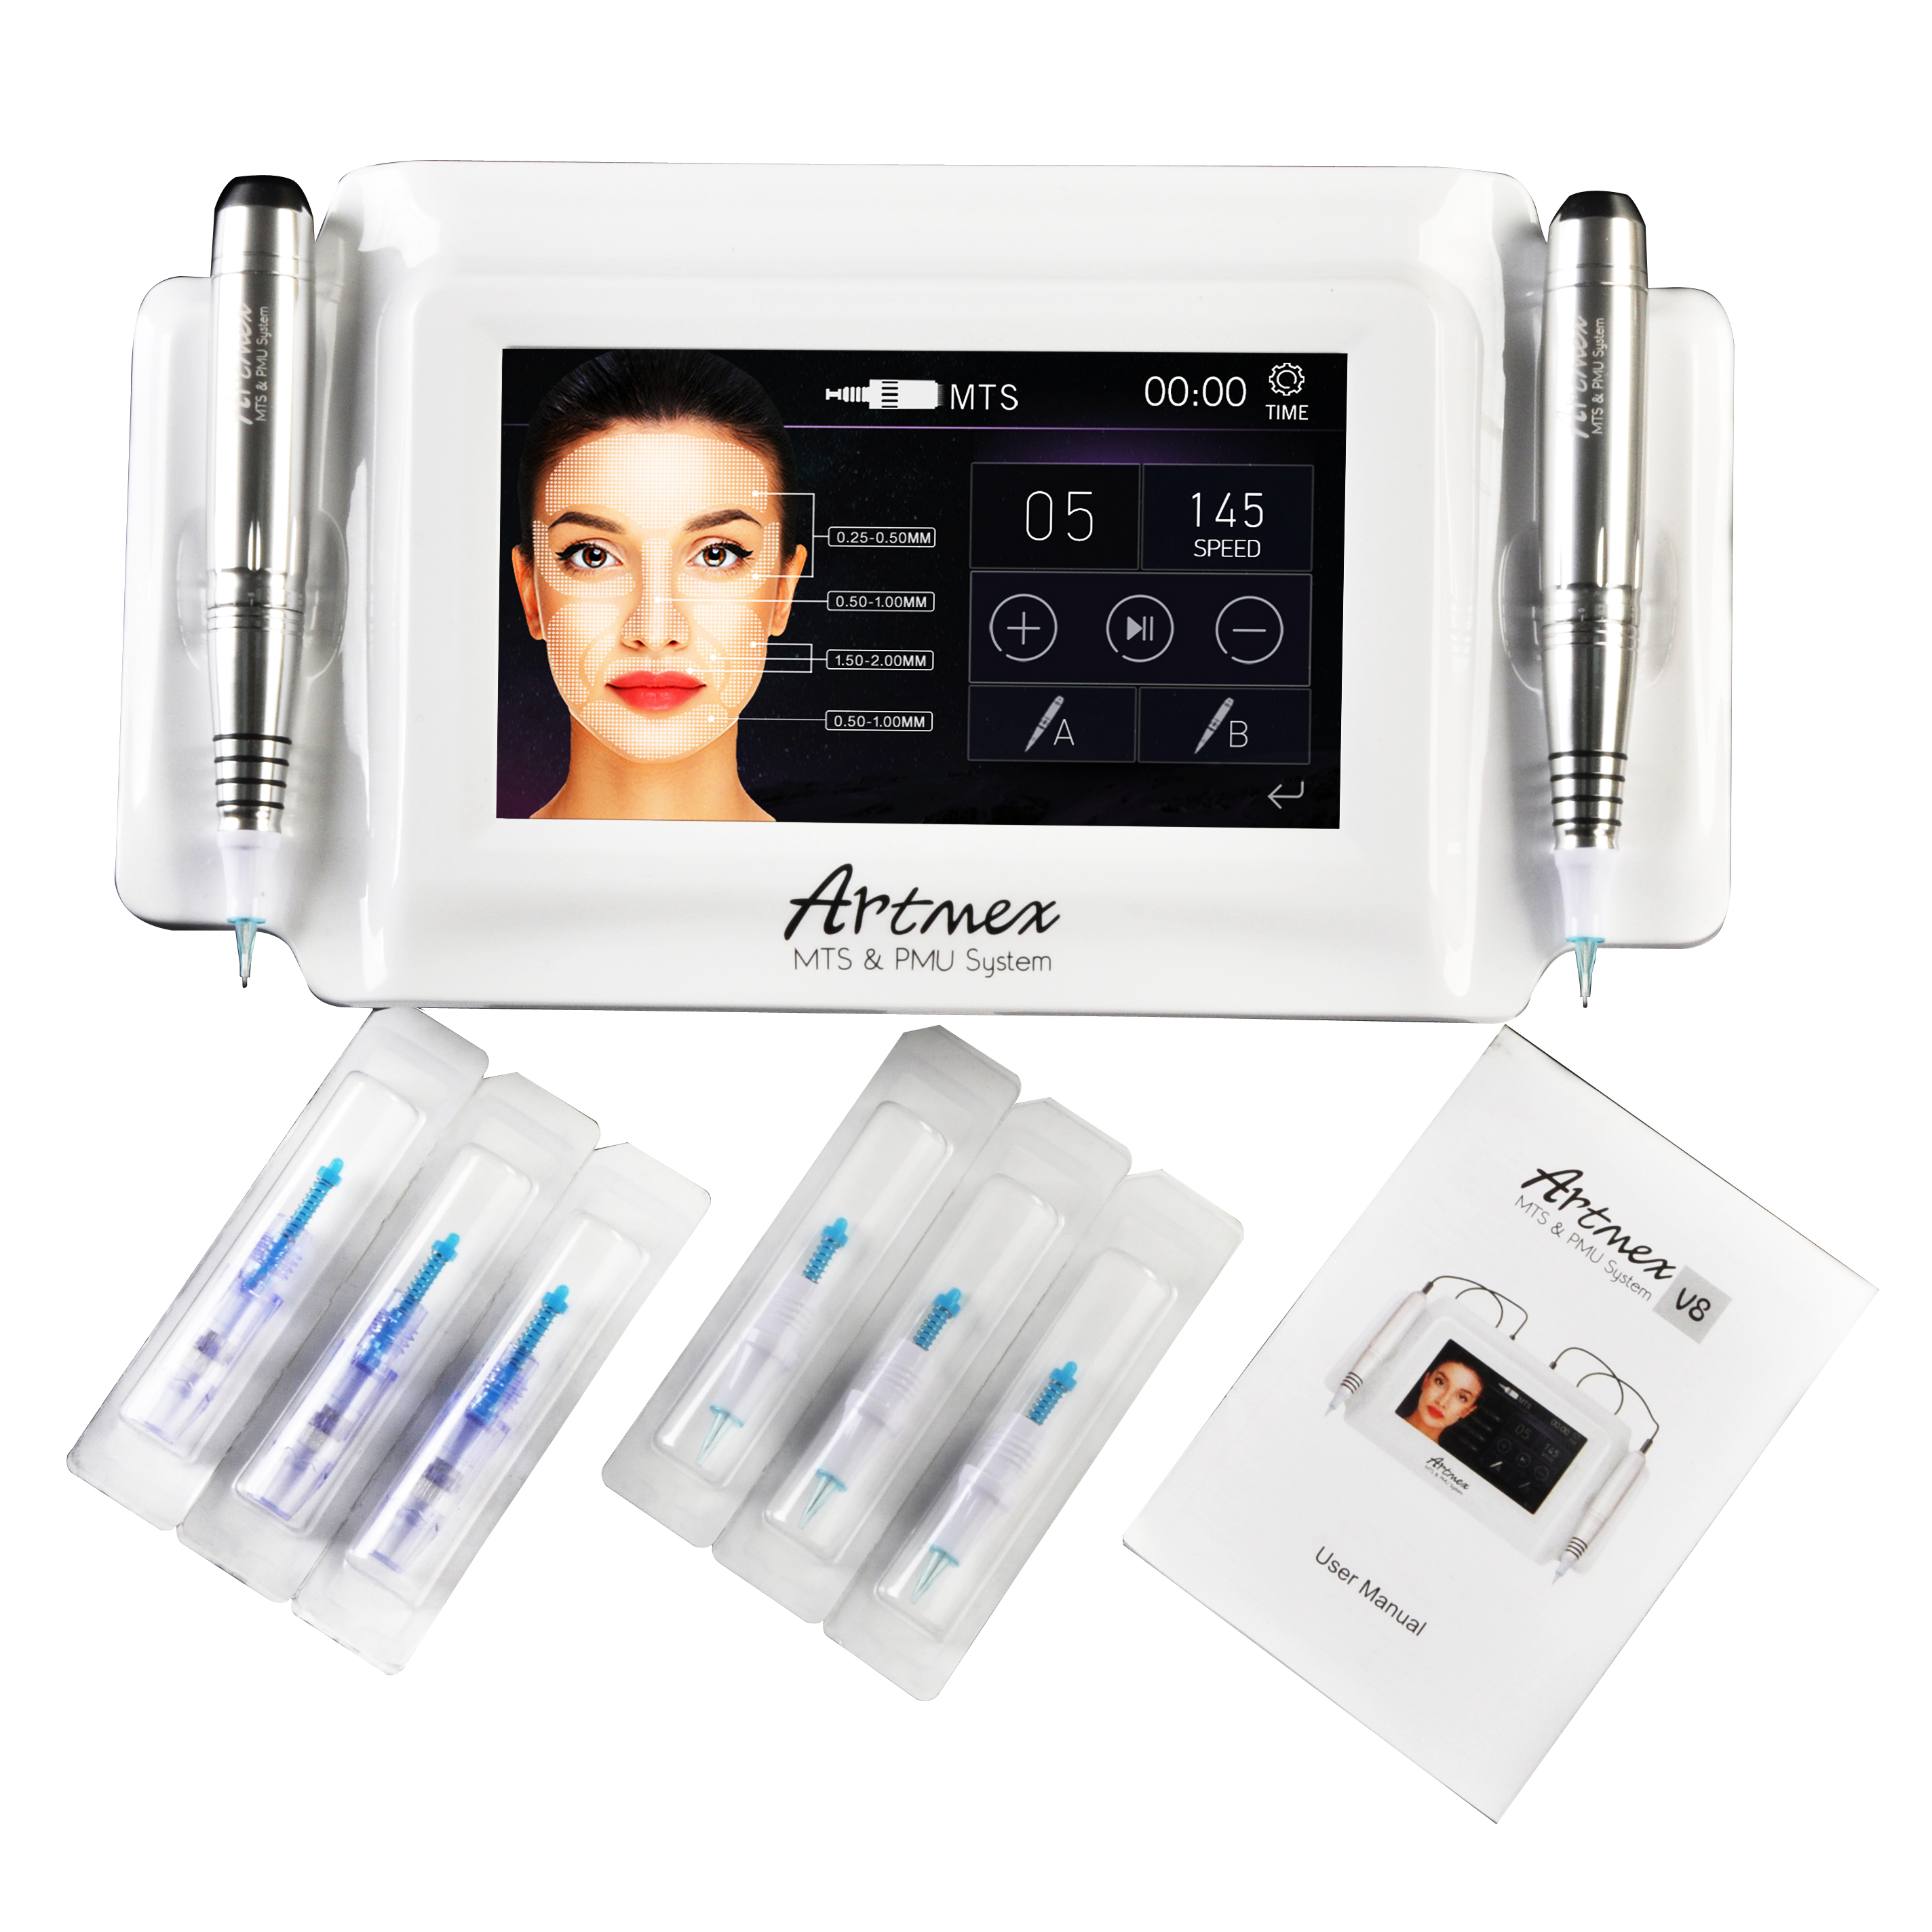 Professionelle Semi Permanent Make-Up Maschine Tattoo Kits Artmex V8 mit Zwei Augenbrauen Lippen Tattoo Stift für Schönheit Salon & Home verwenden